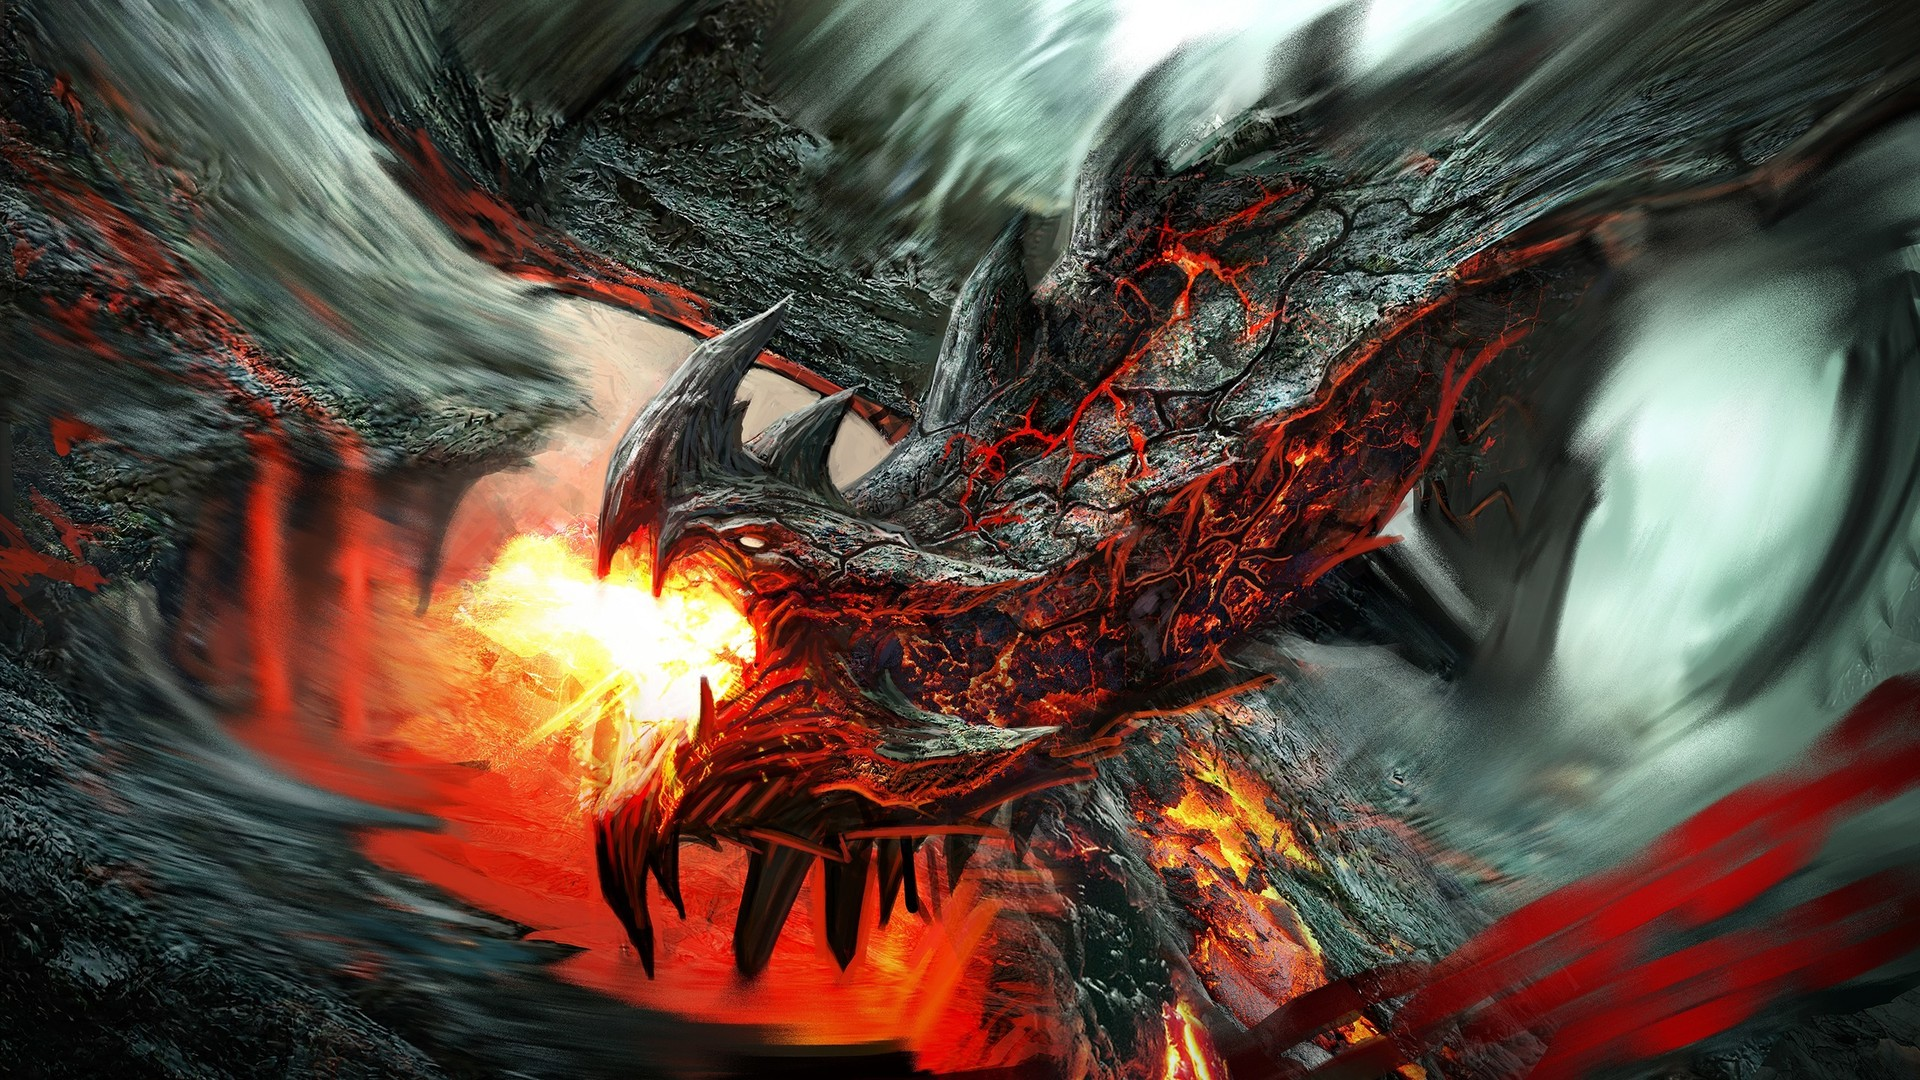 Top 50 hd dragon wallpapers images backgrounds desktop wallpapers fire dragon fire lava dragon voltagebd Gallery